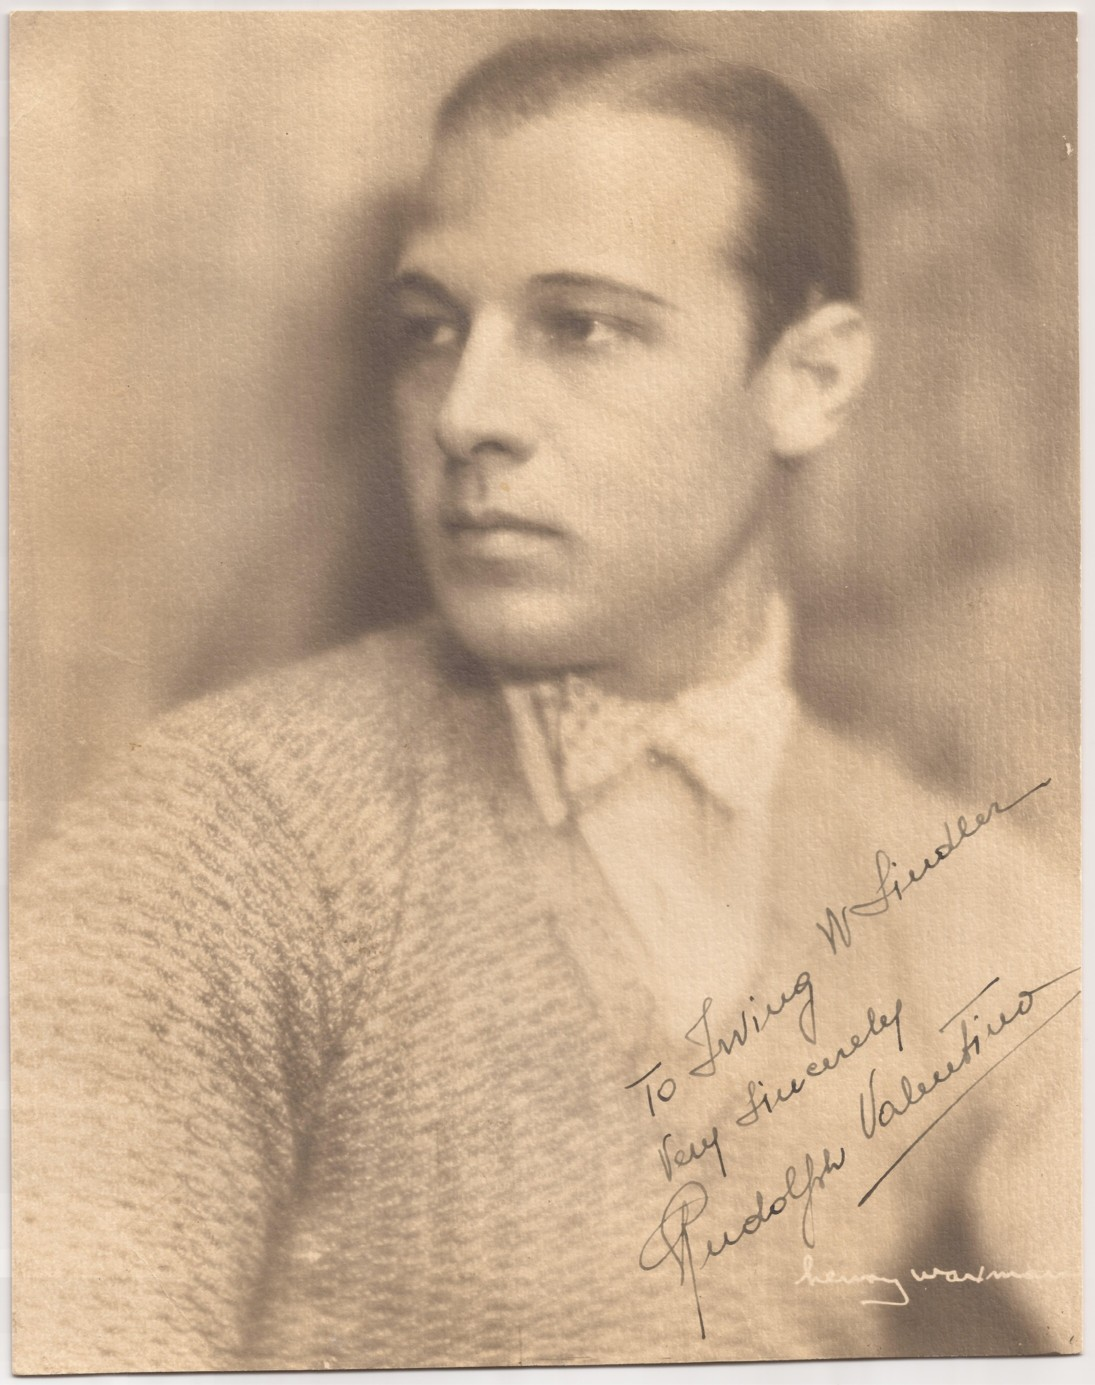 personal and professional life of rudolph valentino